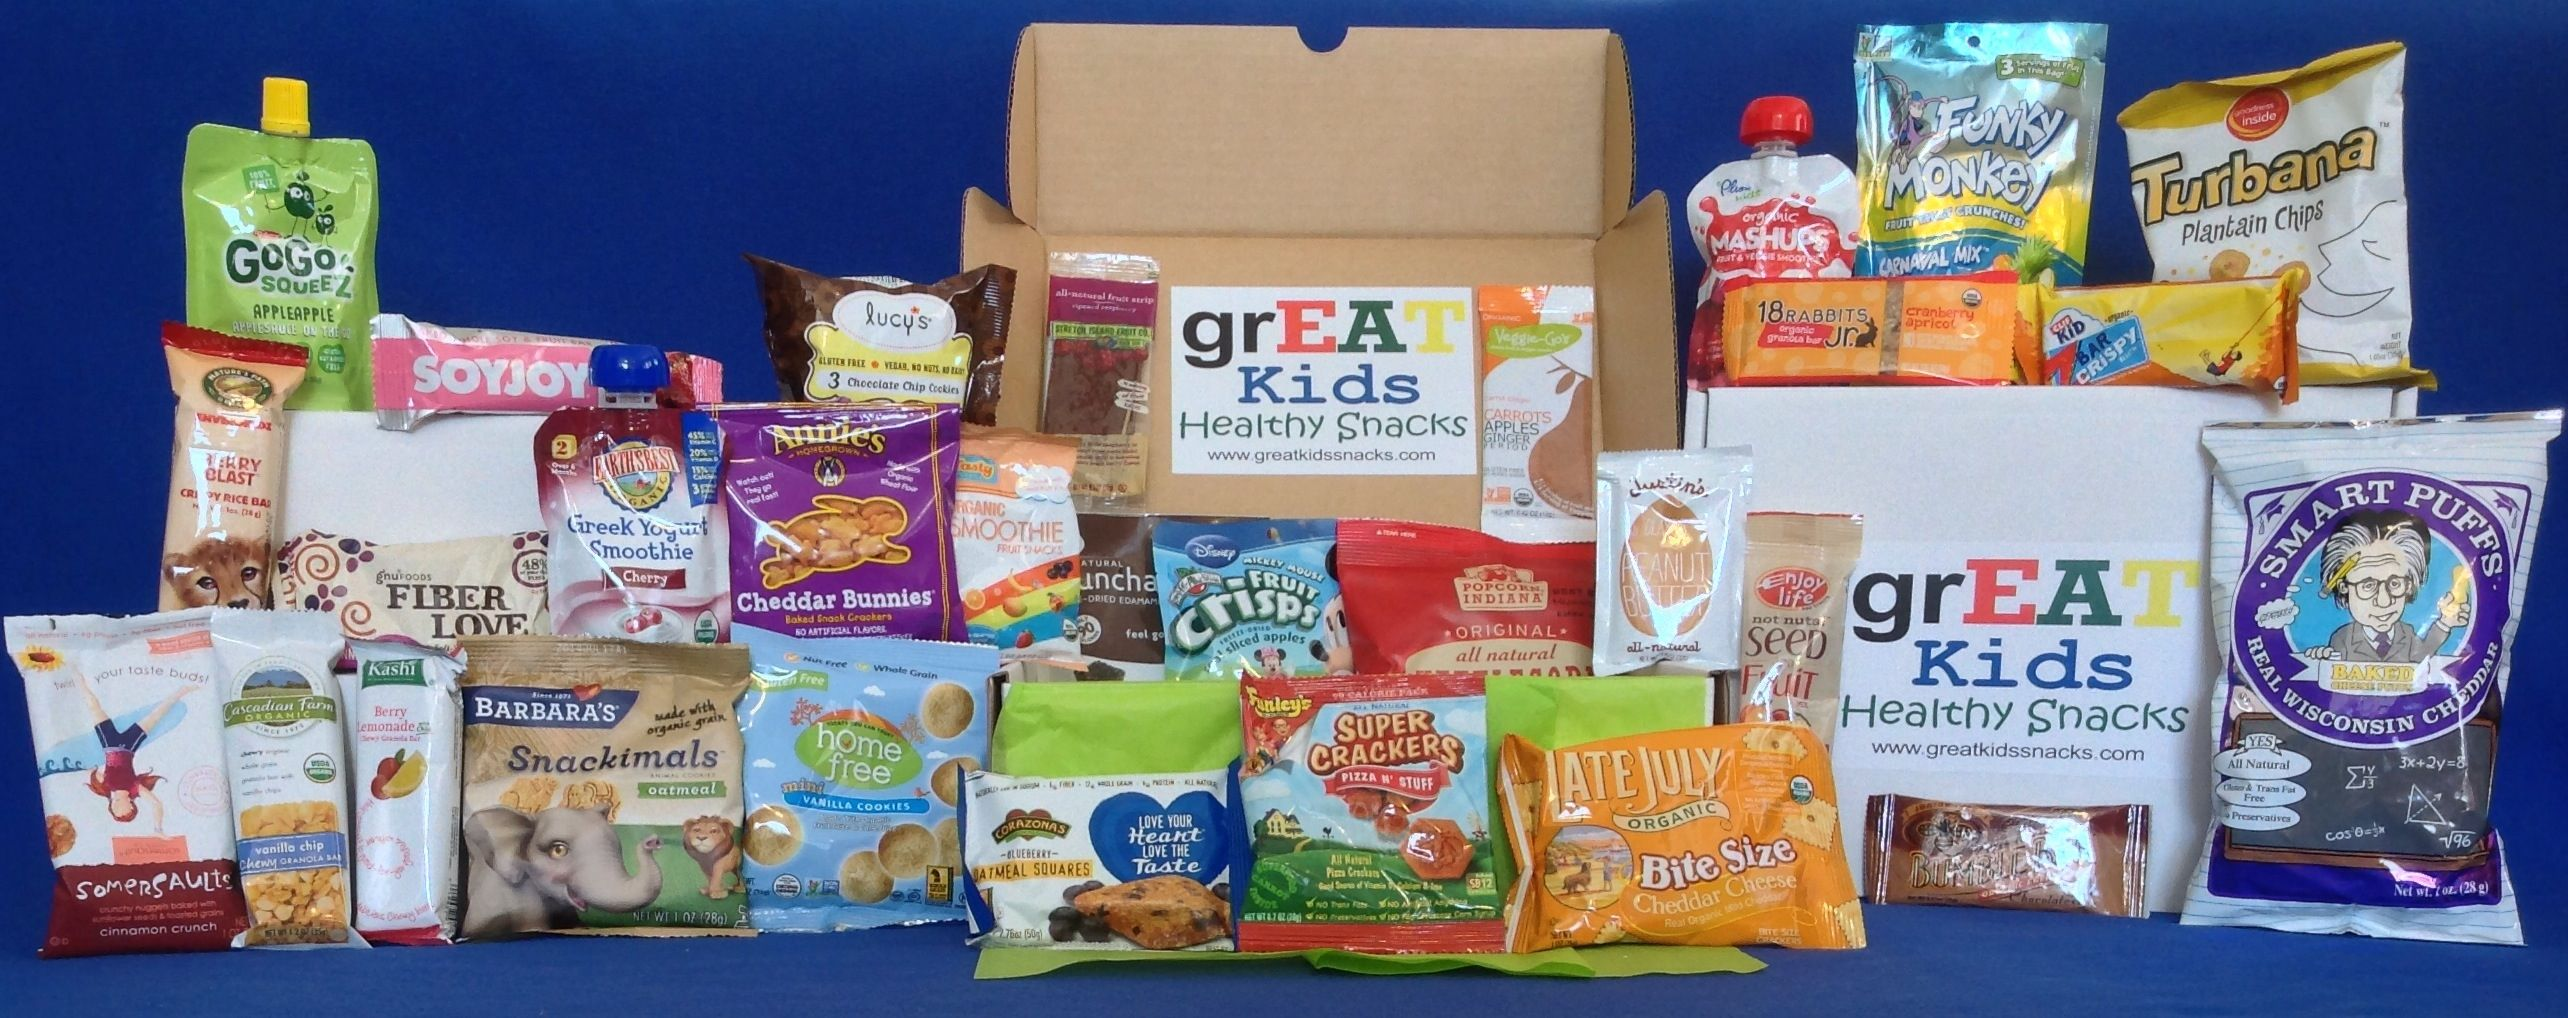 great kids snack box 30 new and different snacks